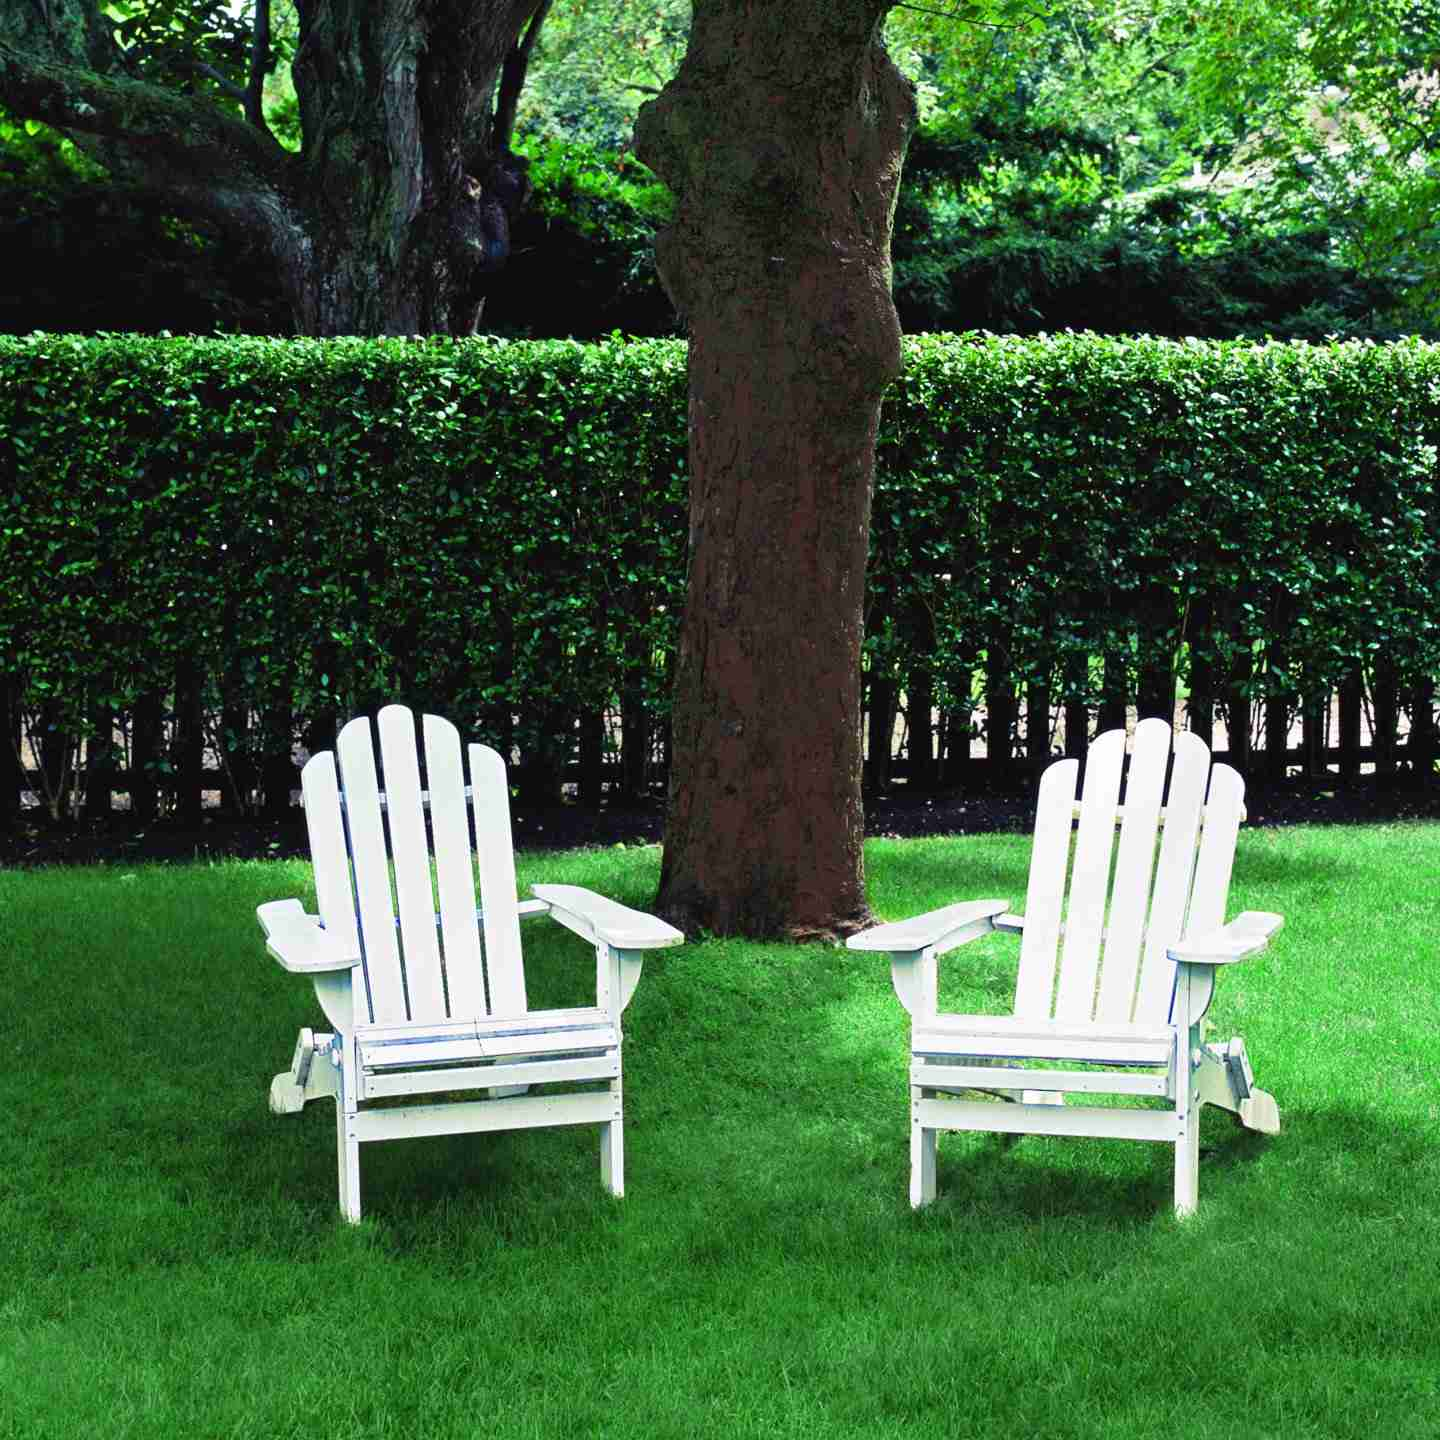 two seater lawn chair revolving godrej 19 free adirondack plans you can diy today white chairs by a tree